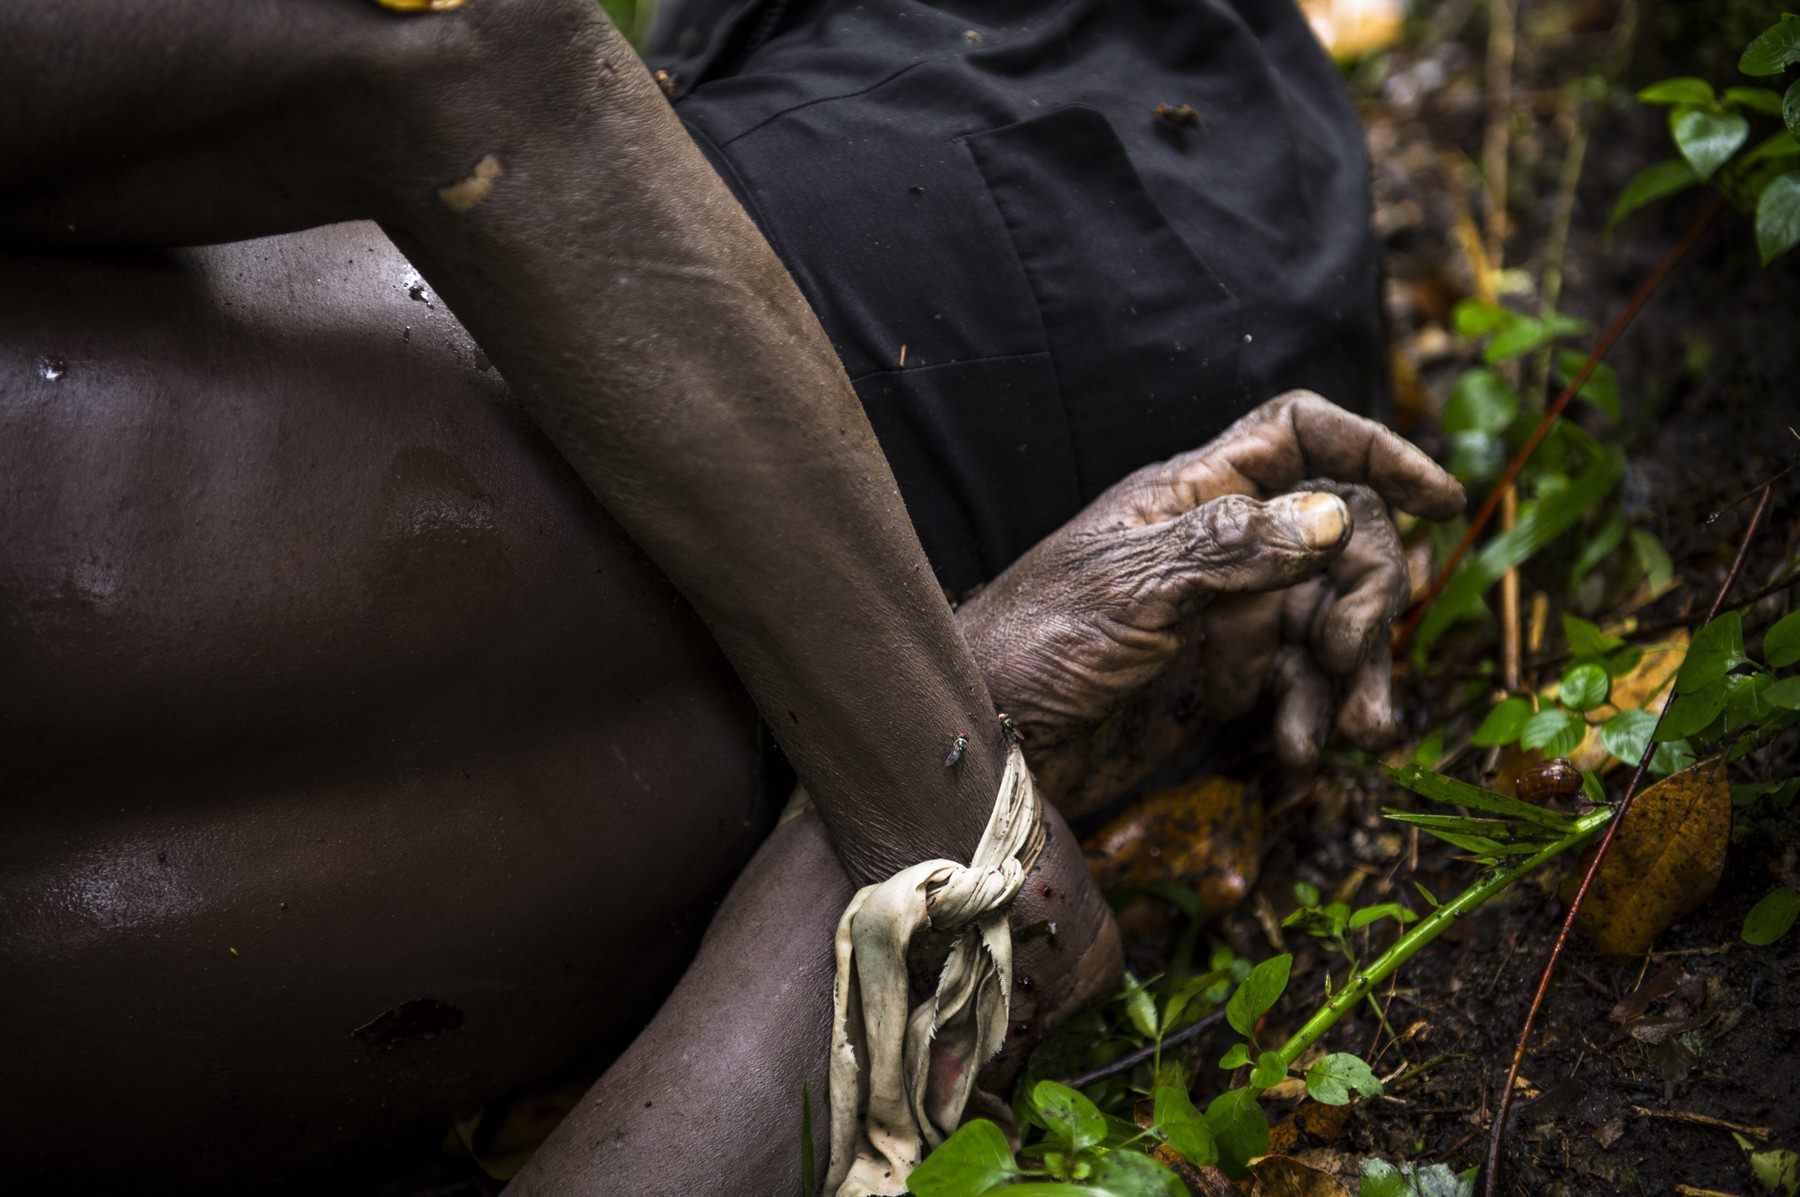 "The bodies of two men killed near the village of Mabenga in the Democratic Republic of the Congo's restive North Kivu province, lie with their hands tied behind their backs in the jungle beside the Rwindi river on July 29, 2012. M23 rebels accuse the Congolese army of massacring up to 70 people here, throwing their bodies into the river. M23 claim that the army accused those killed of having a ""familiar relationship"" with the rebel group."